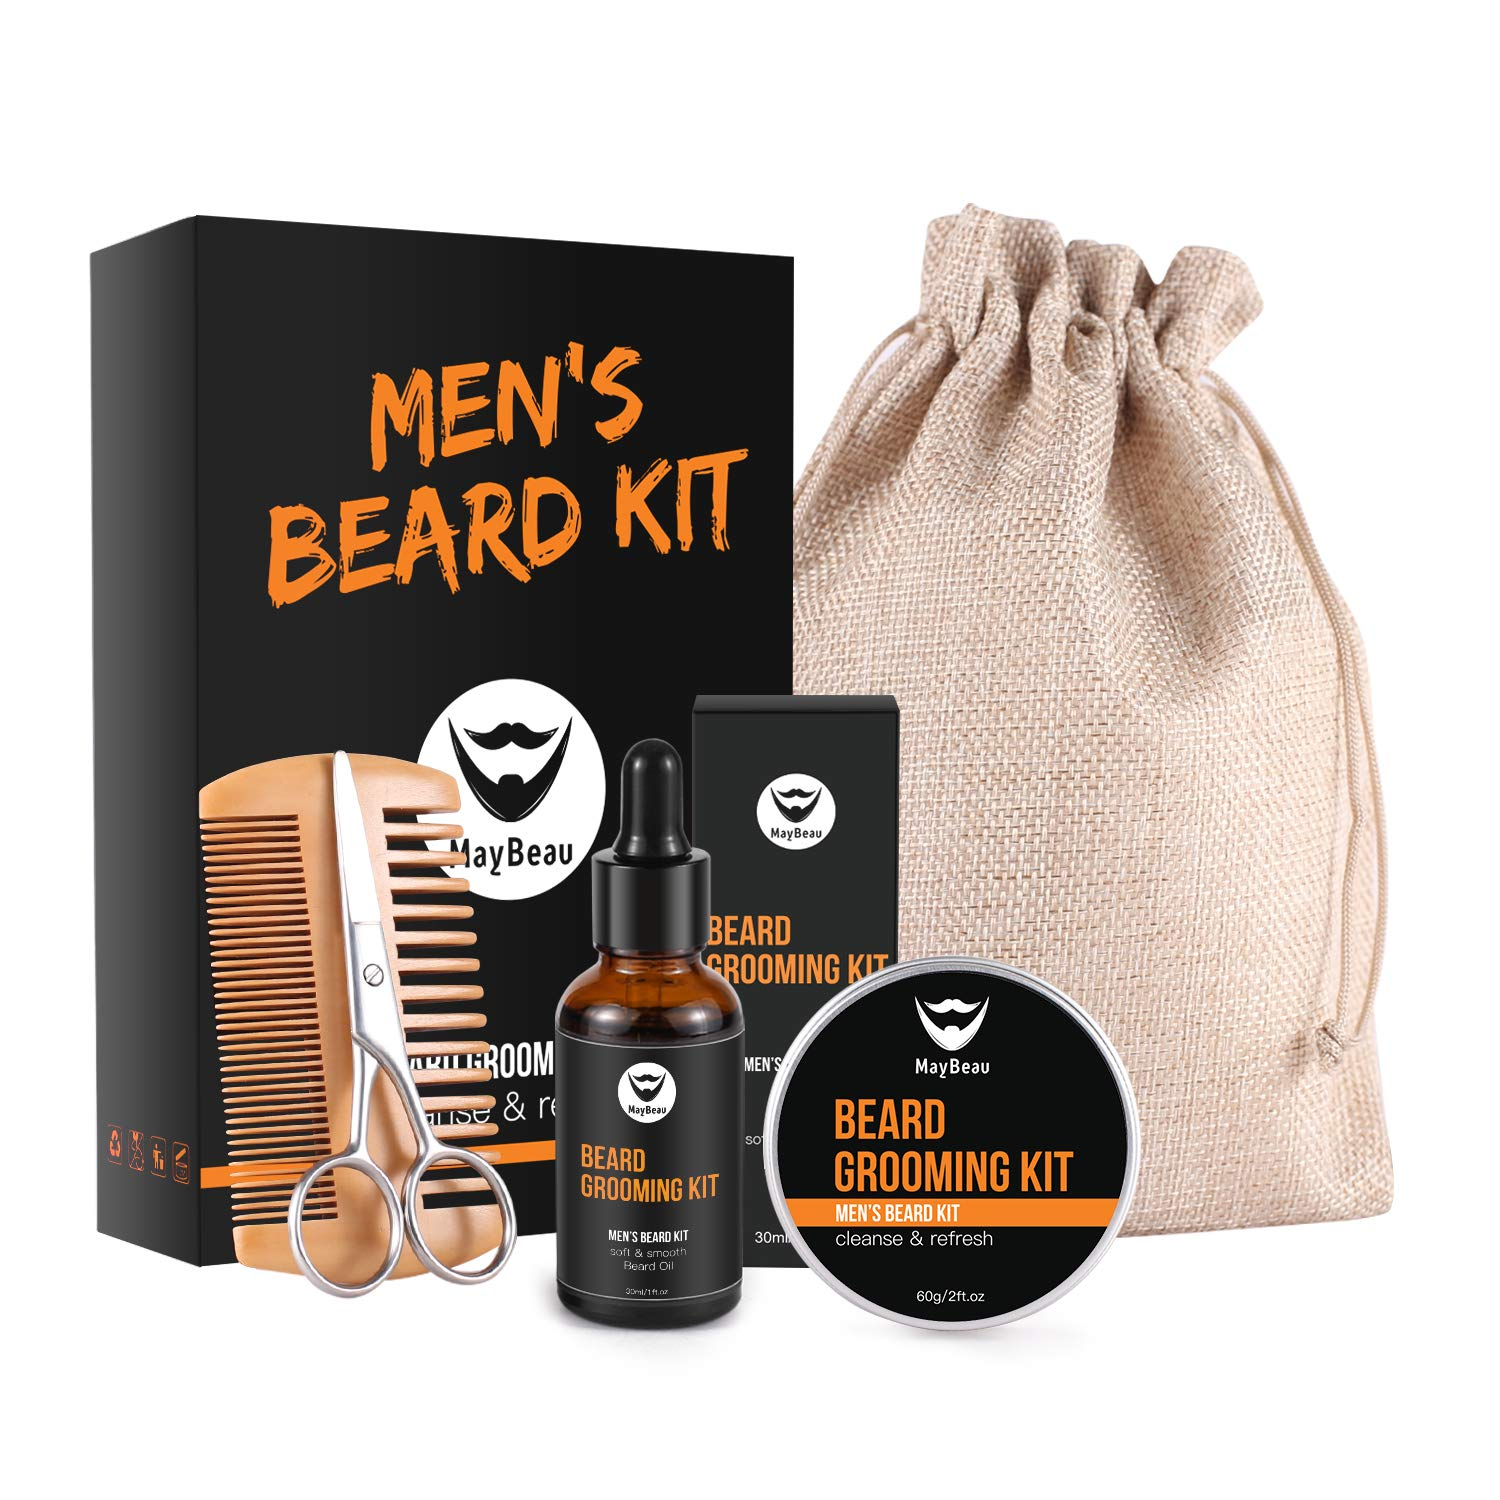 MayBeau Beard Kit for Men 6 in 1 Beard Growth Grooming & Trimming with Unscented Leave-in Conditioner Oil, Balm, Comb Ultimate Trimmer Set